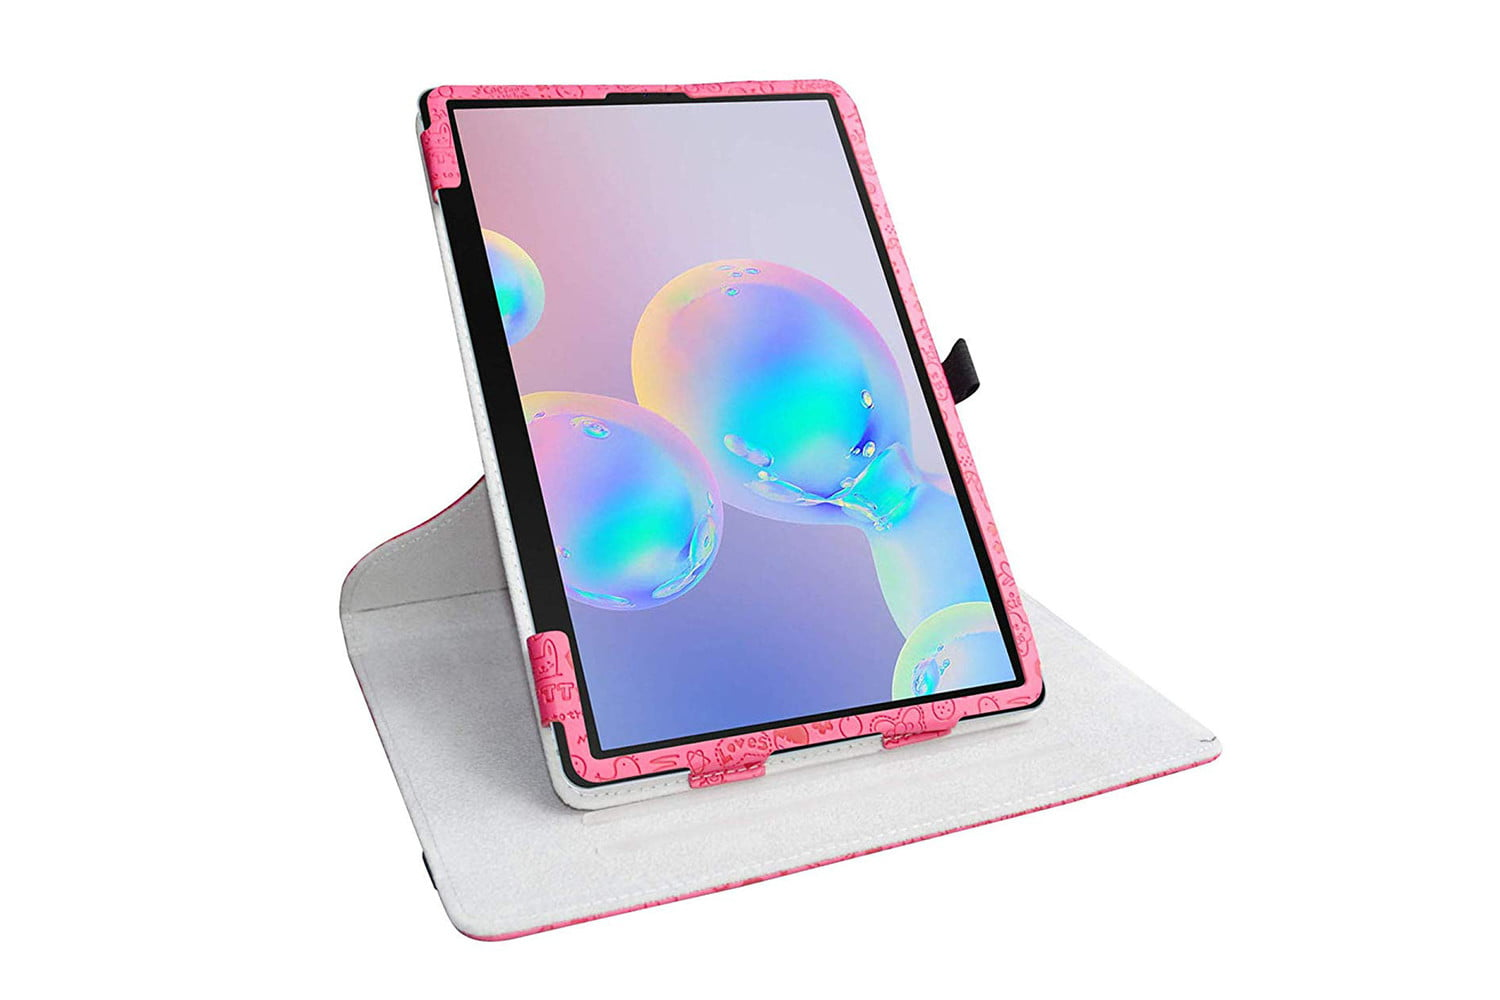 the best samsung galaxy tab s6 cases and covers. Black Bedroom Furniture Sets. Home Design Ideas